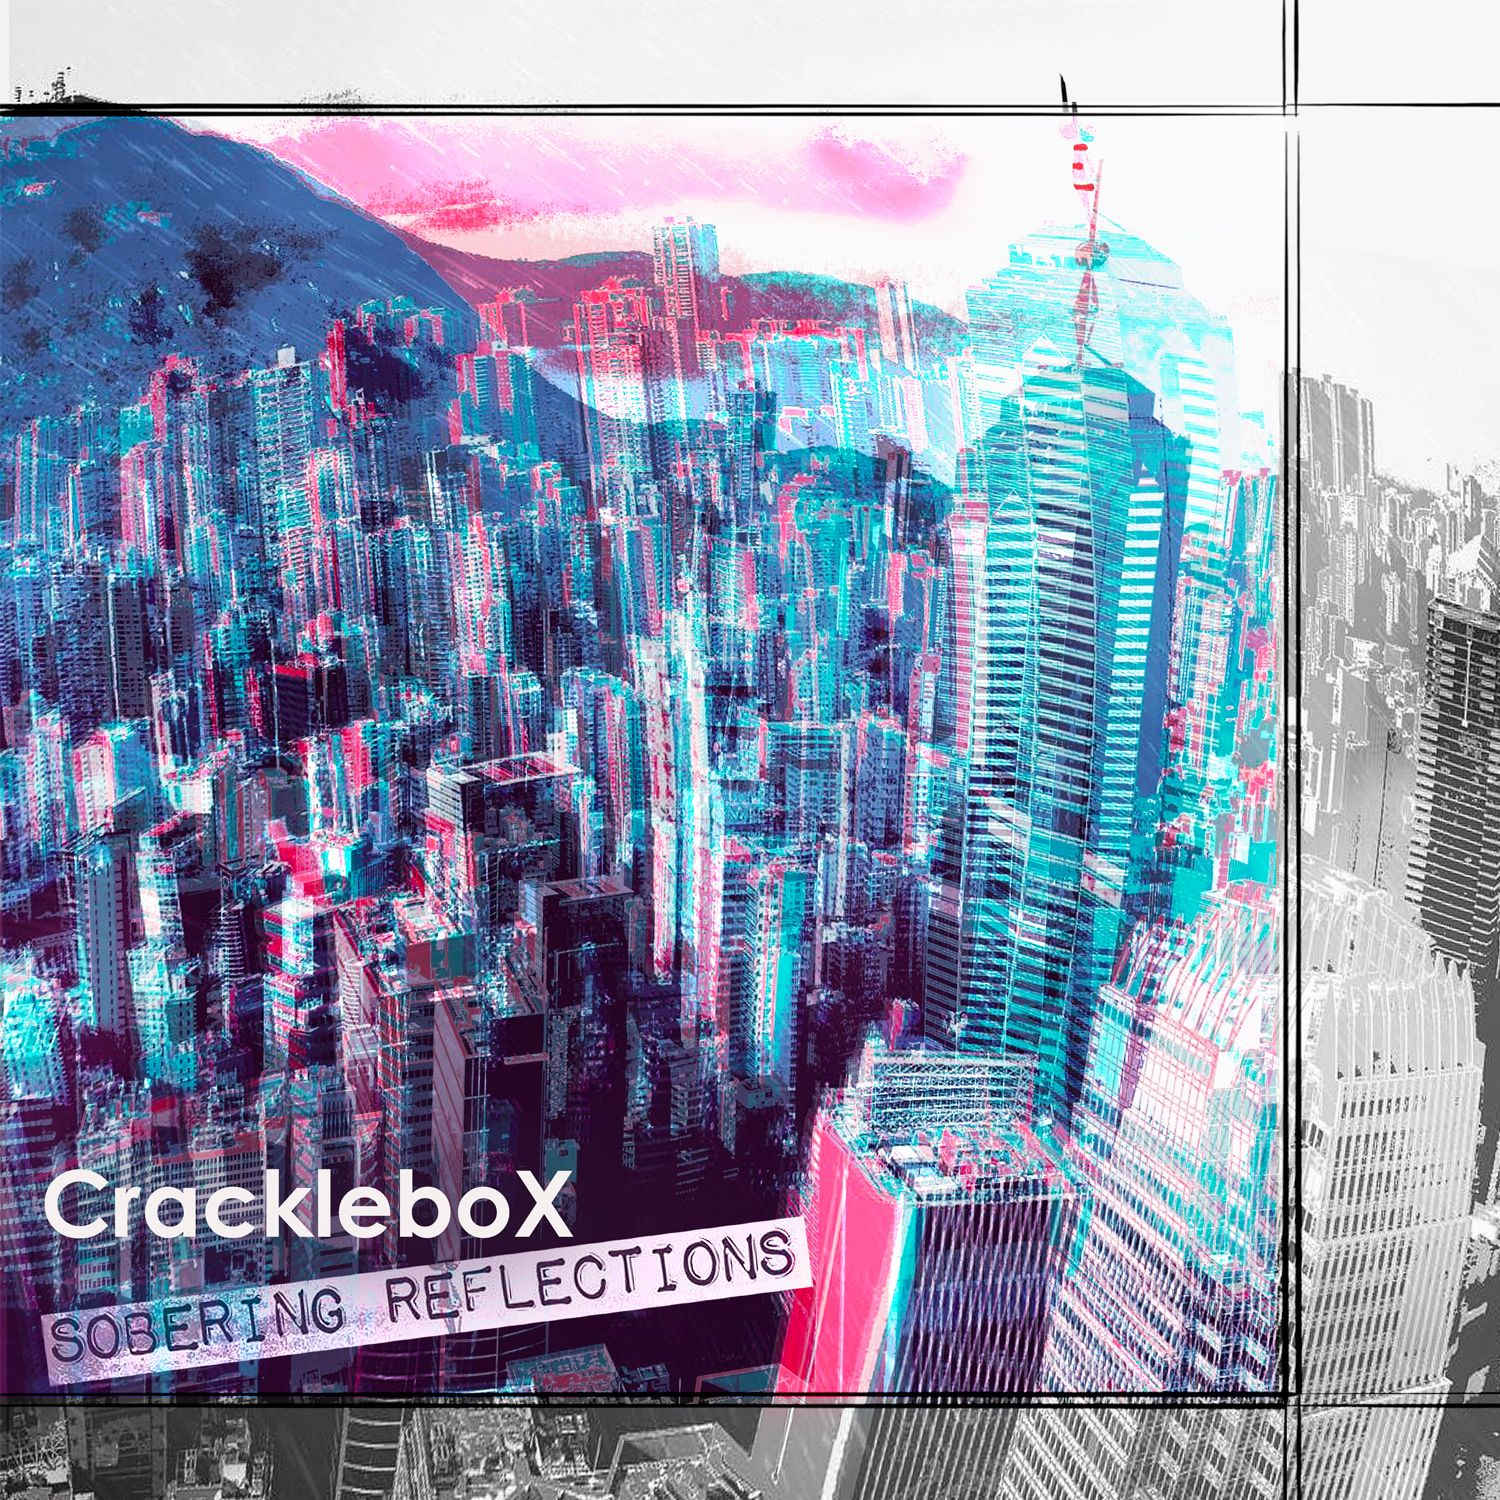 cracklebox